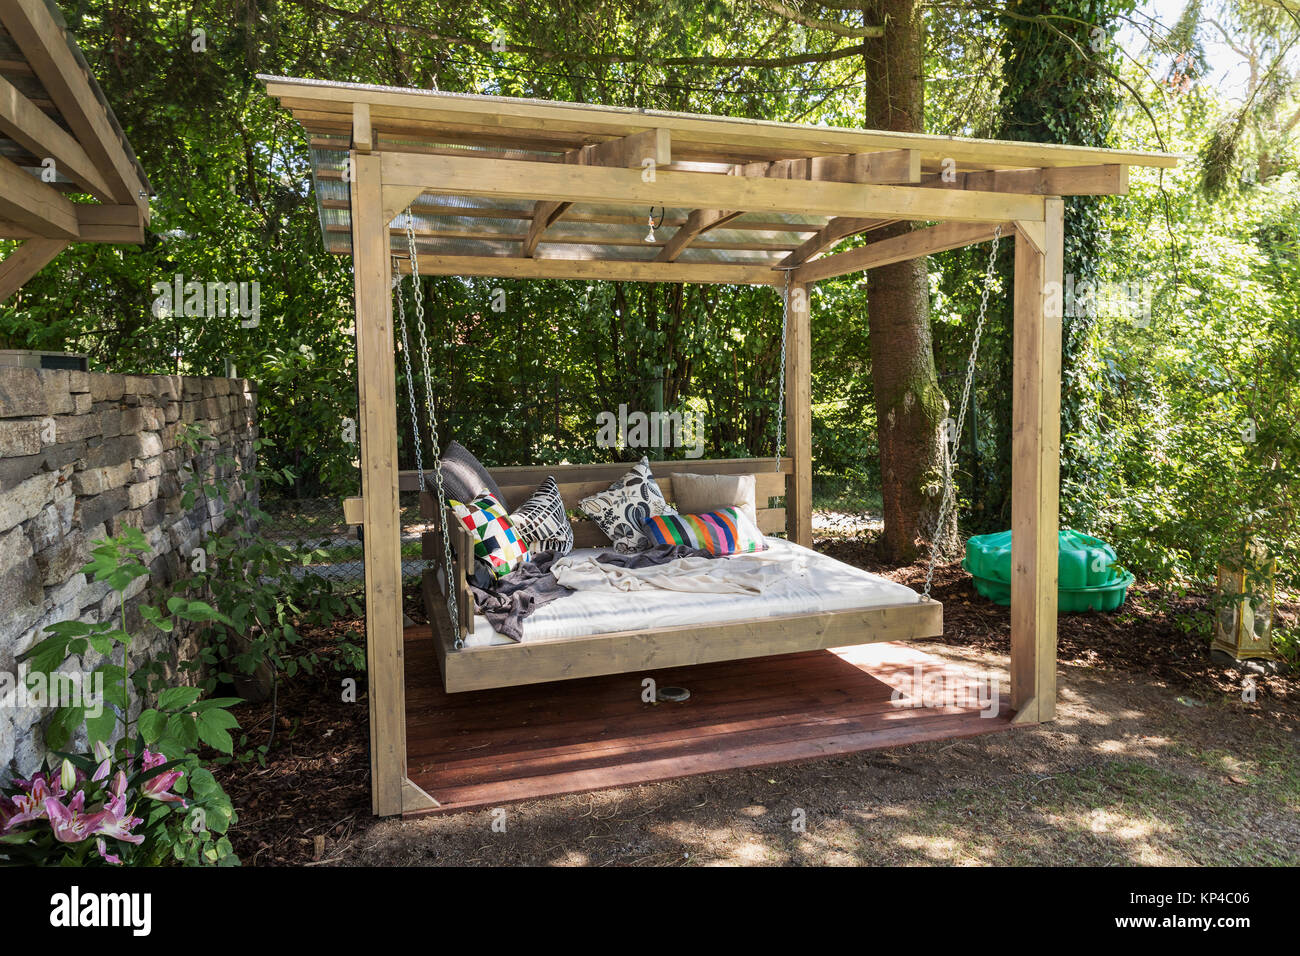 gro e schaukel im bett chaiselongue im garten pergola garten bett mit kissen gro en bett zum. Black Bedroom Furniture Sets. Home Design Ideas